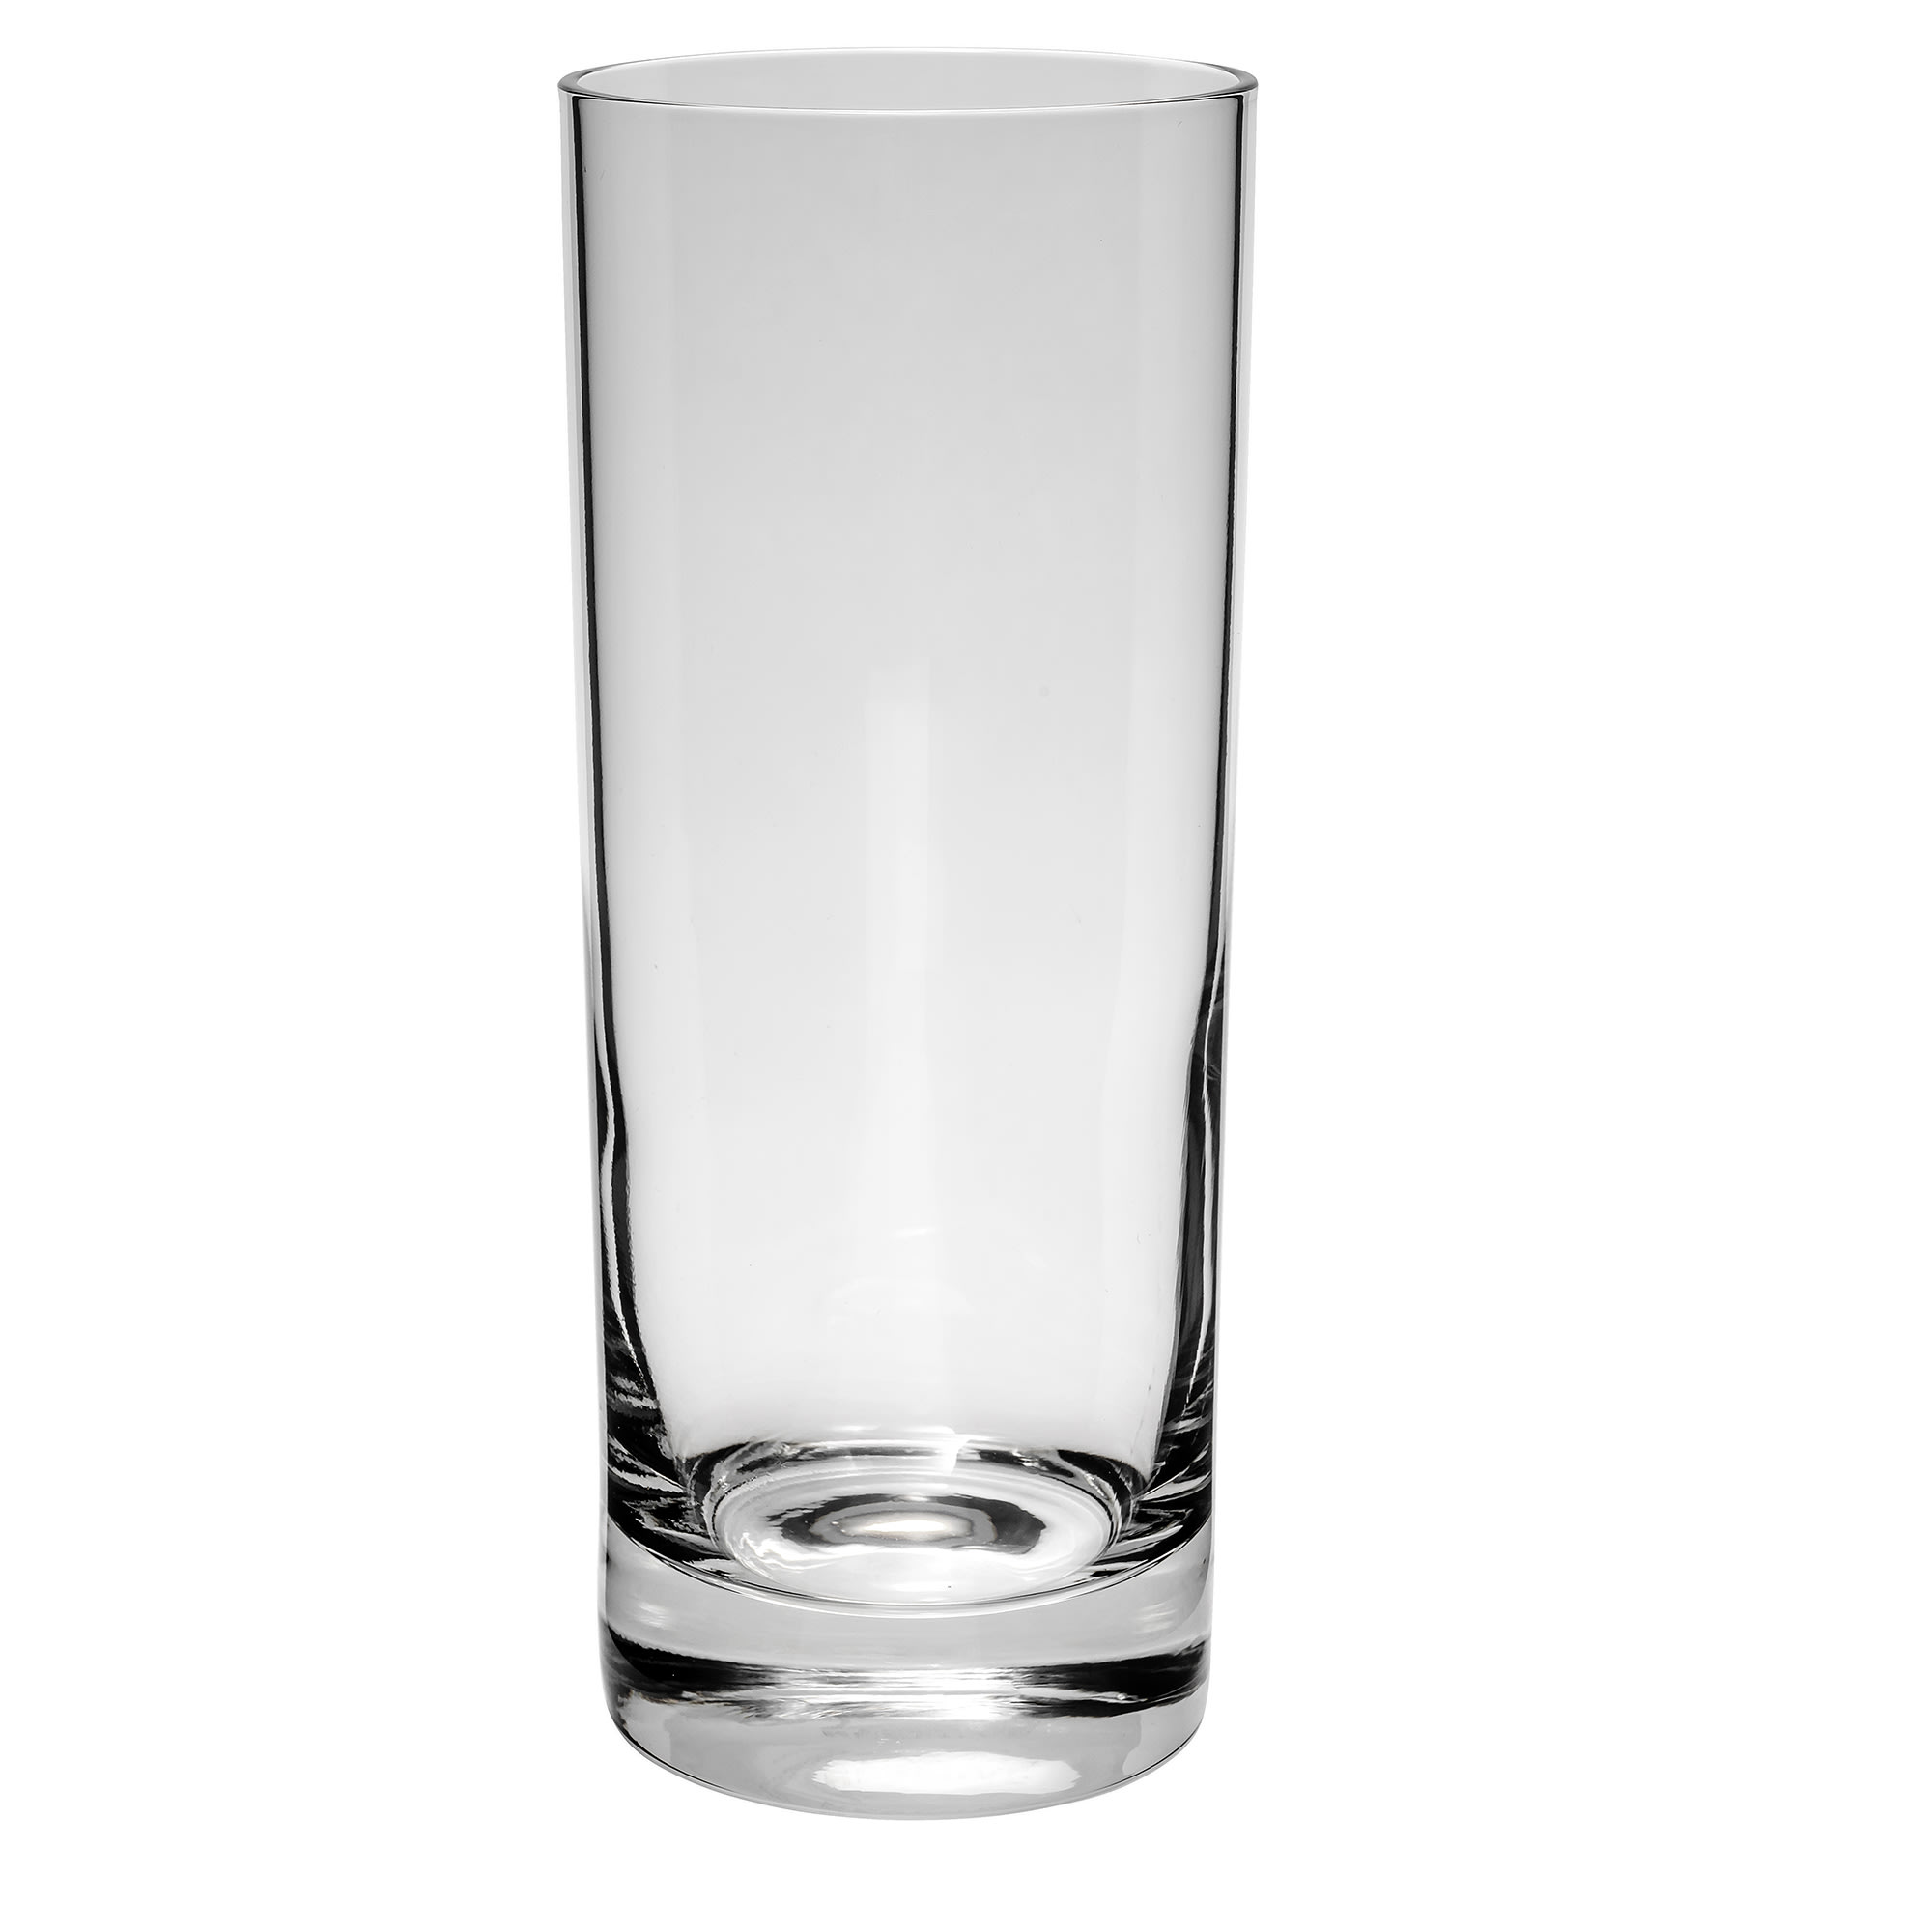 Libbey 9039 15 oz Modernist Beverage Glass